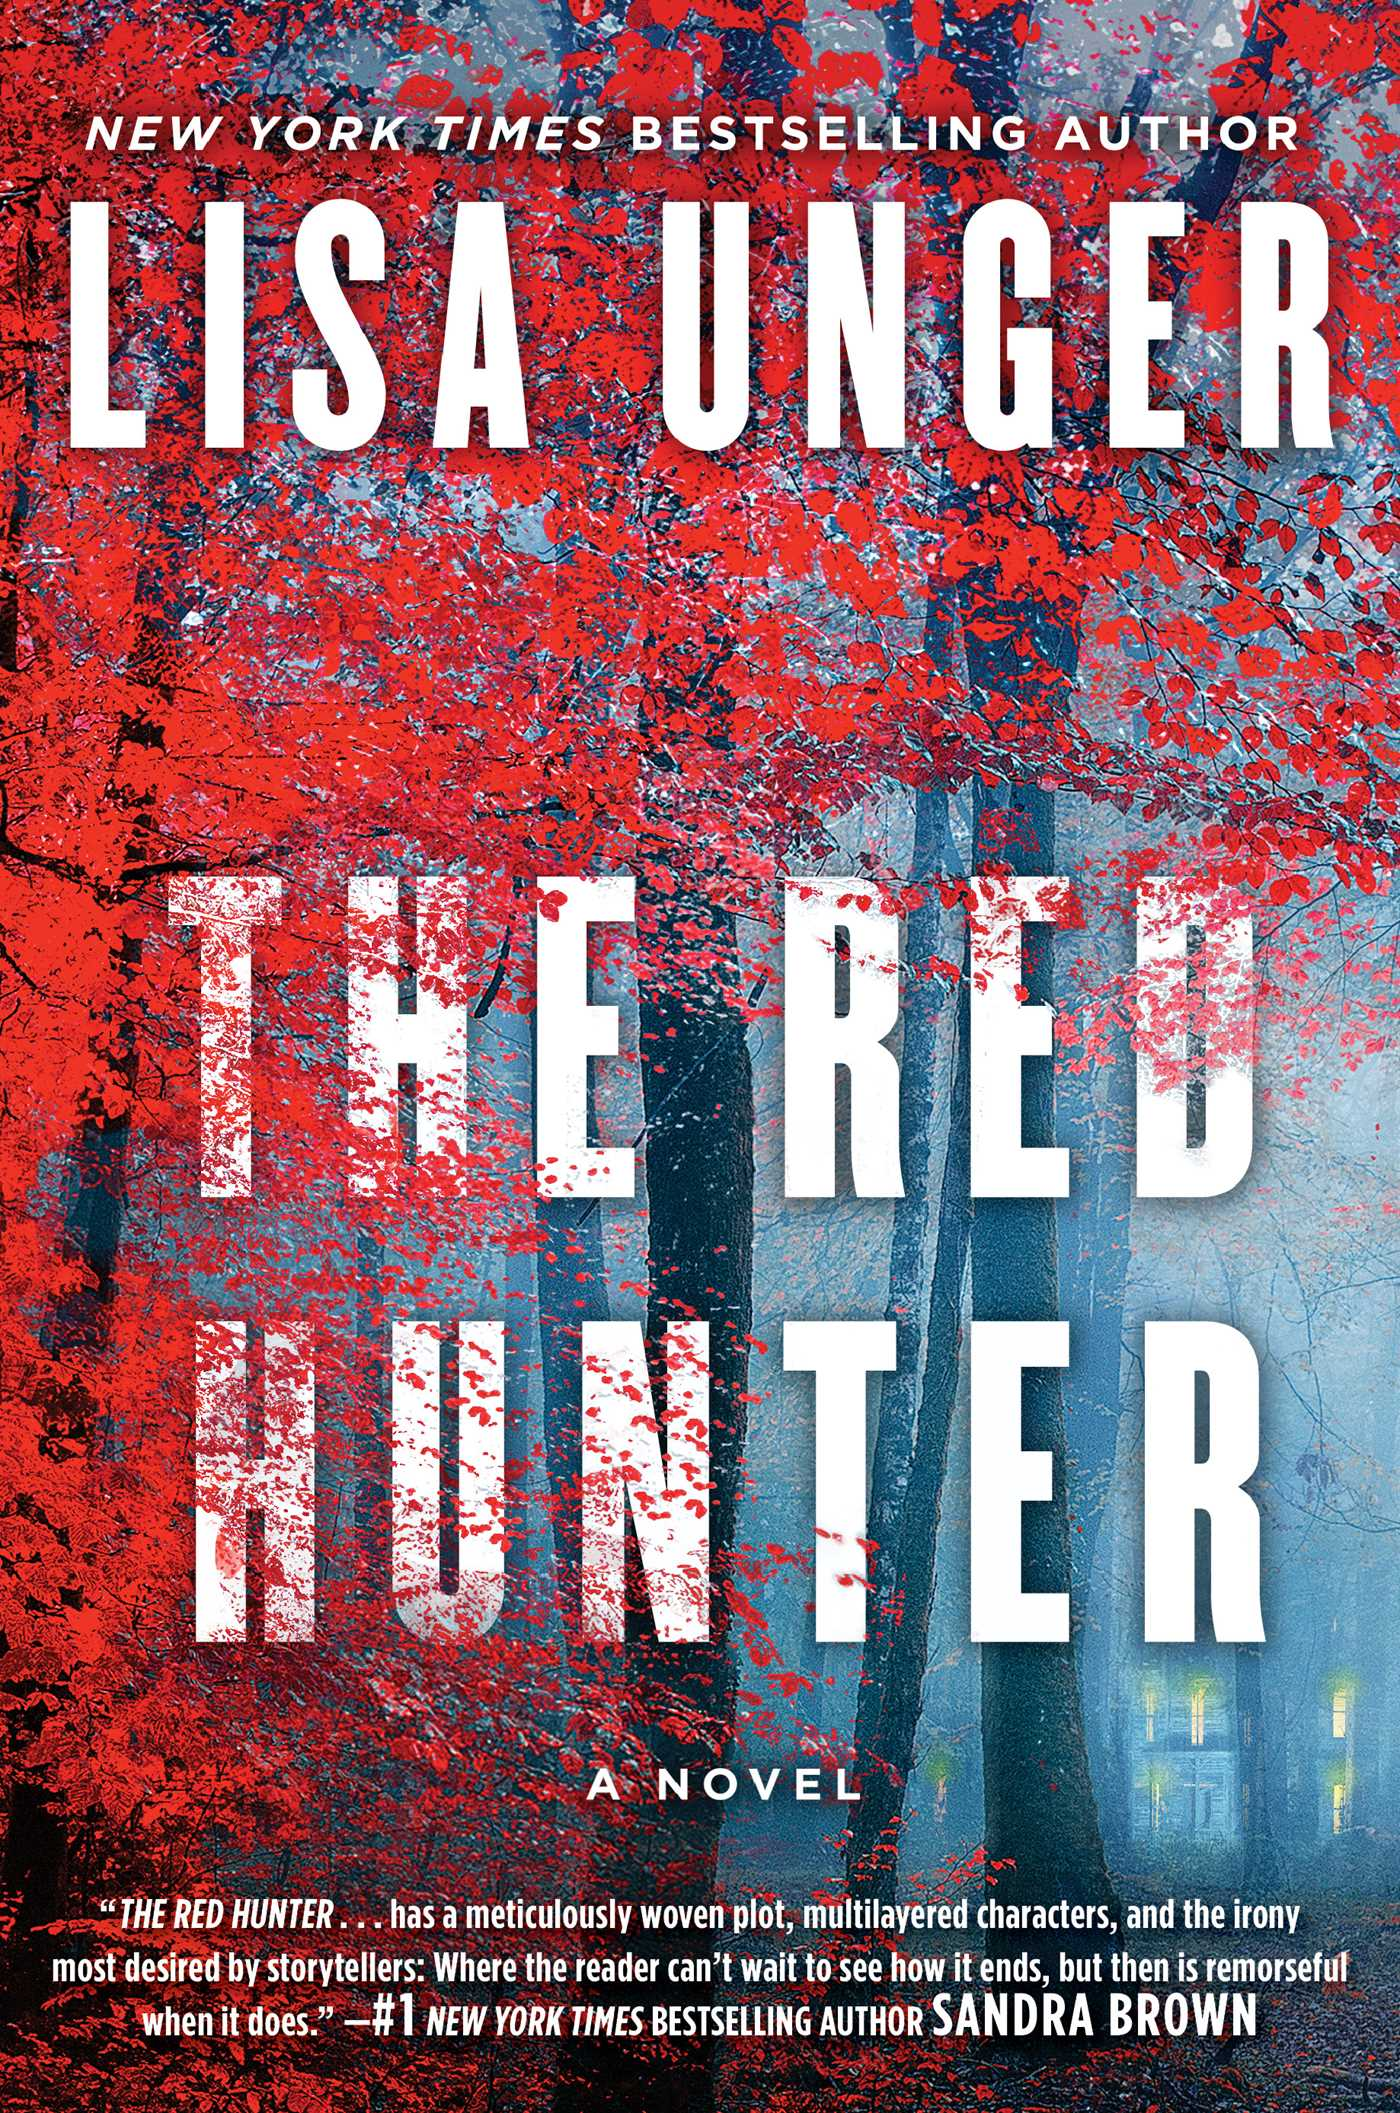 The red hunter 9781501101670 hr